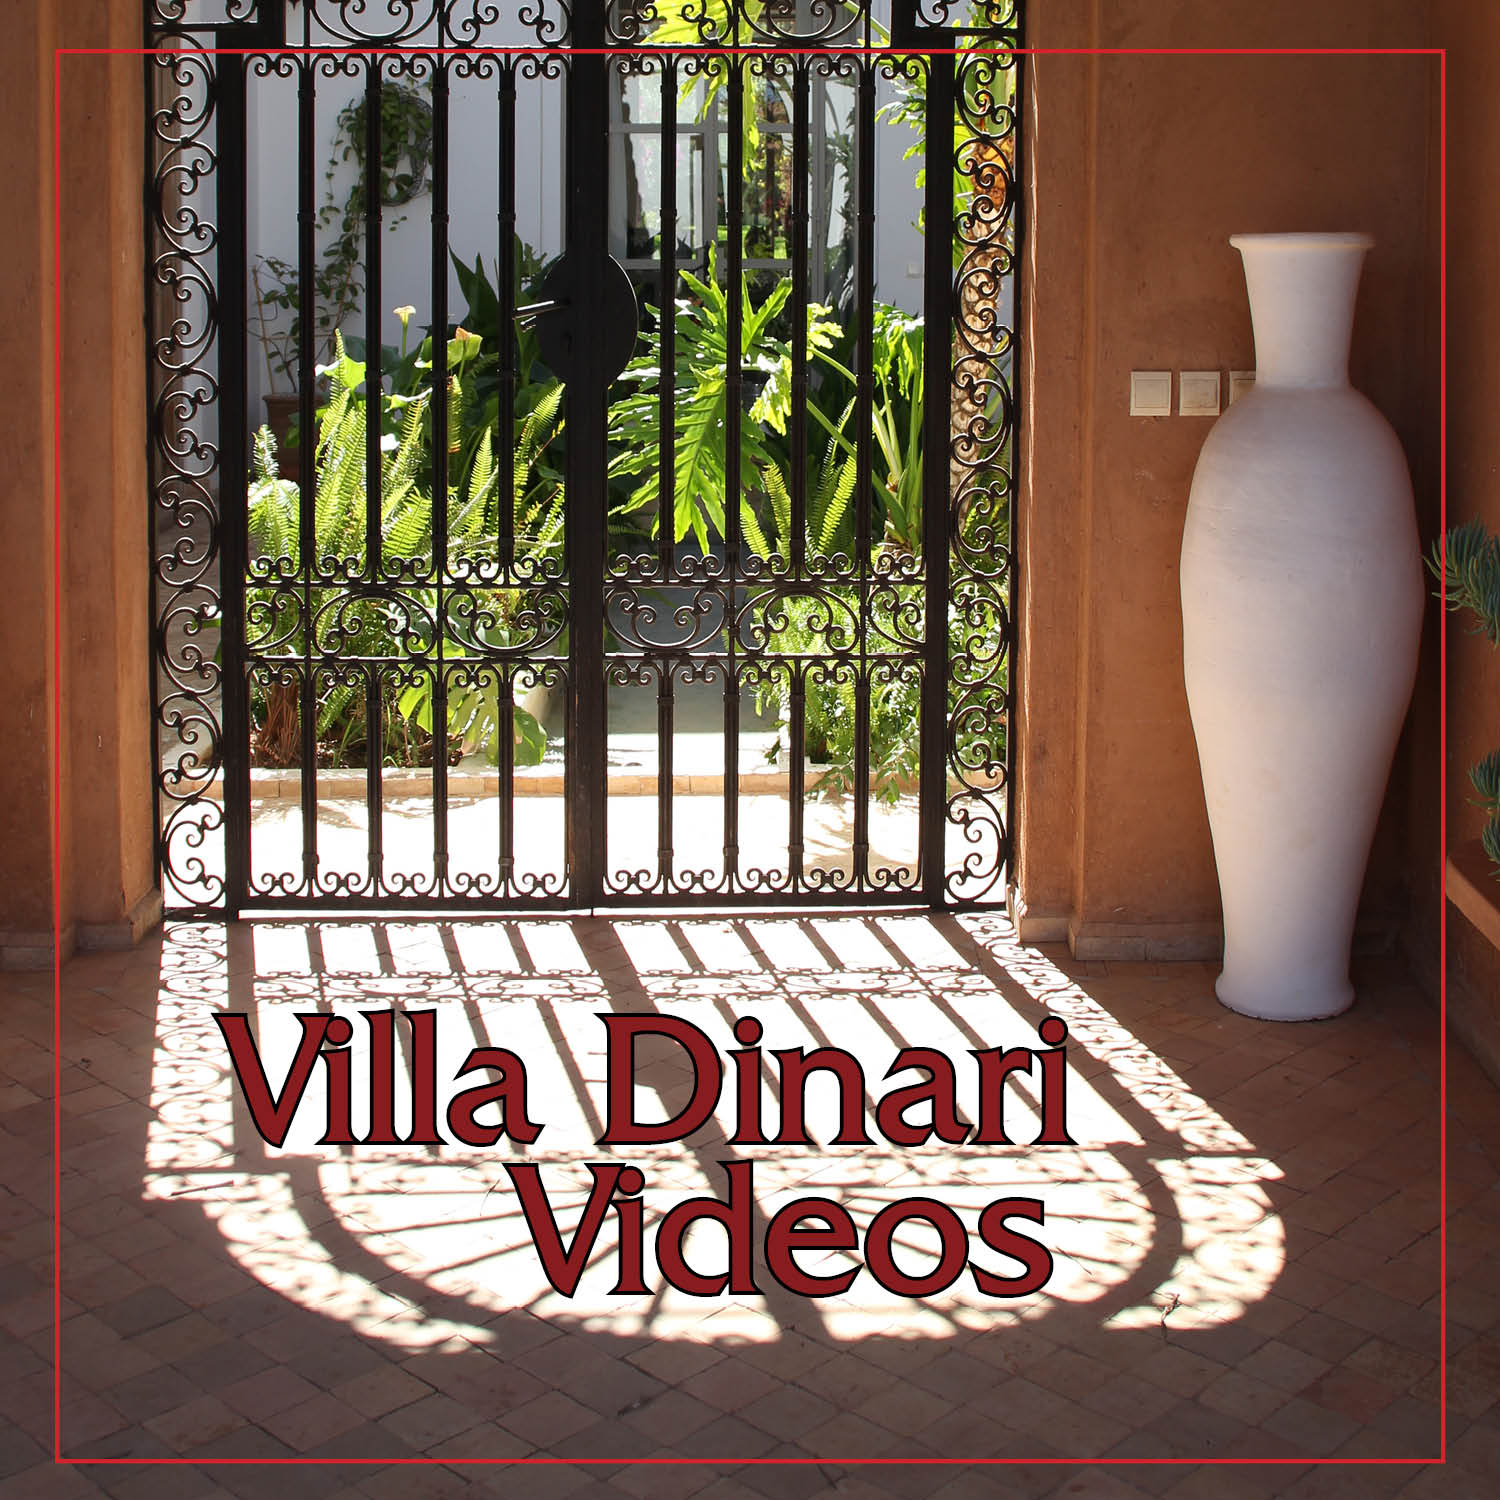 Villa Dinari Videos from the luxury villa in Marrakech